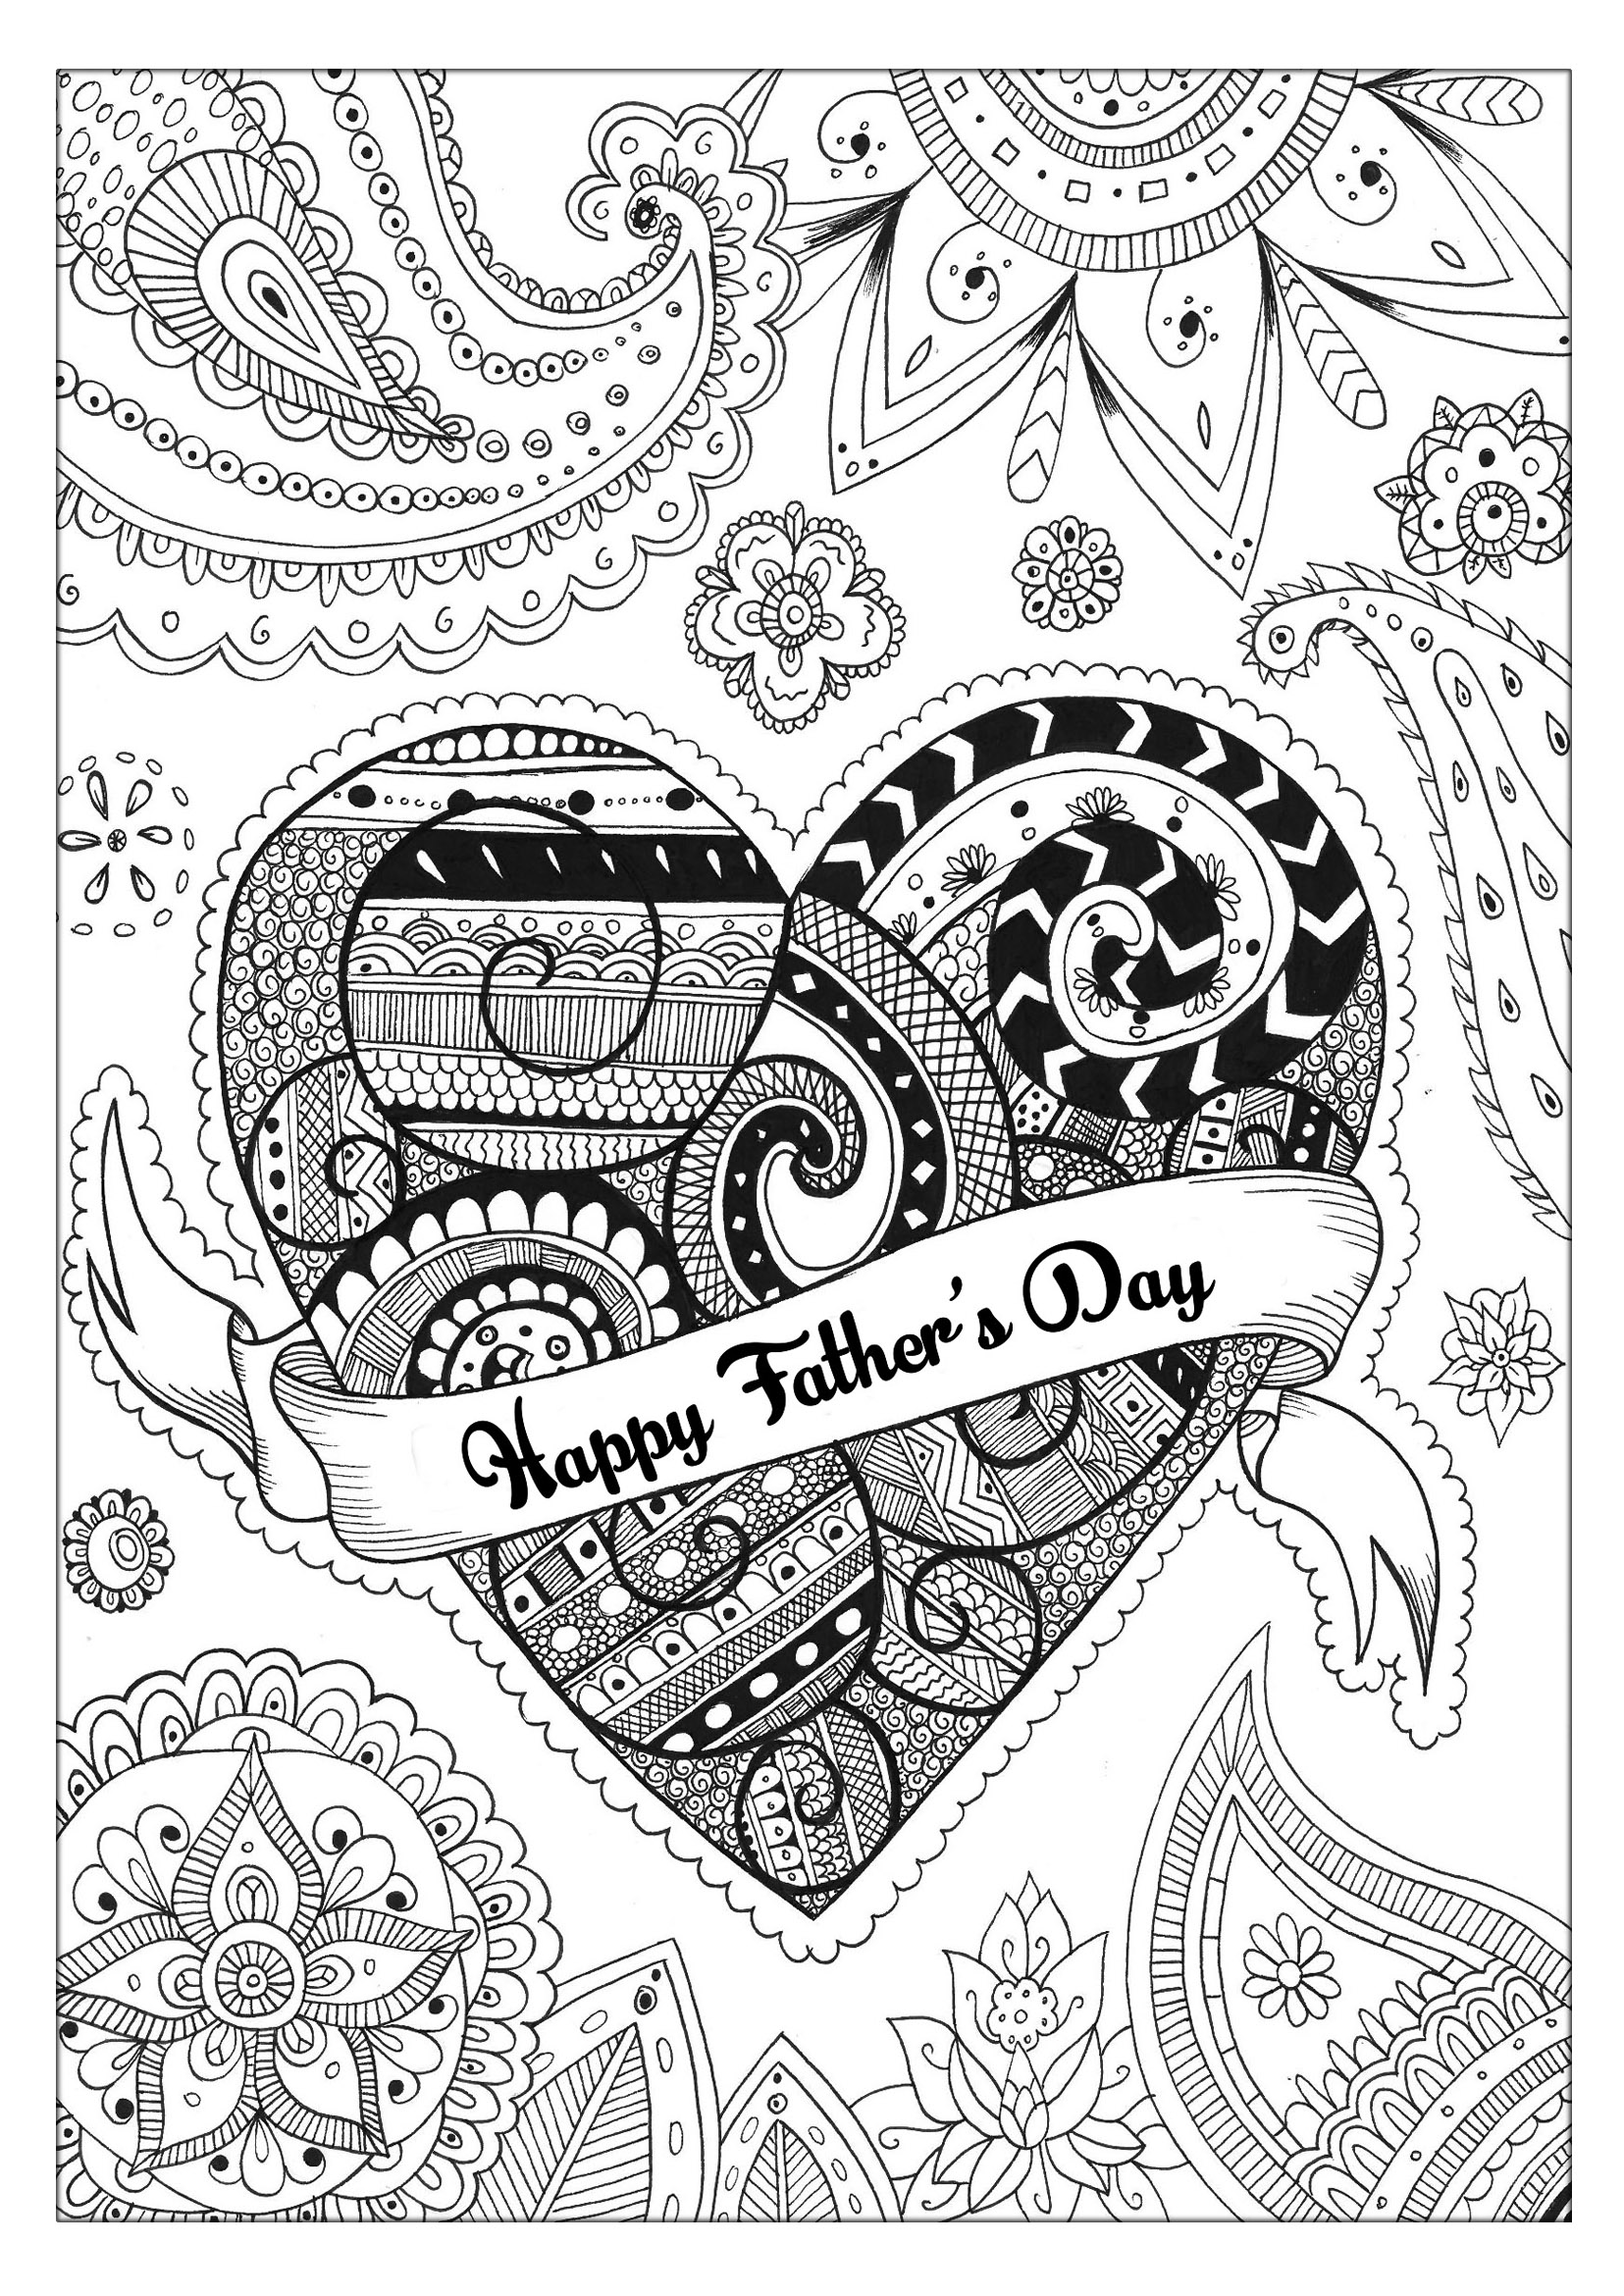 Coloring pages for adults zentangle - An Incredible And Exclusive Zentangle Coloring Page For Father S Day From The Gallery Events